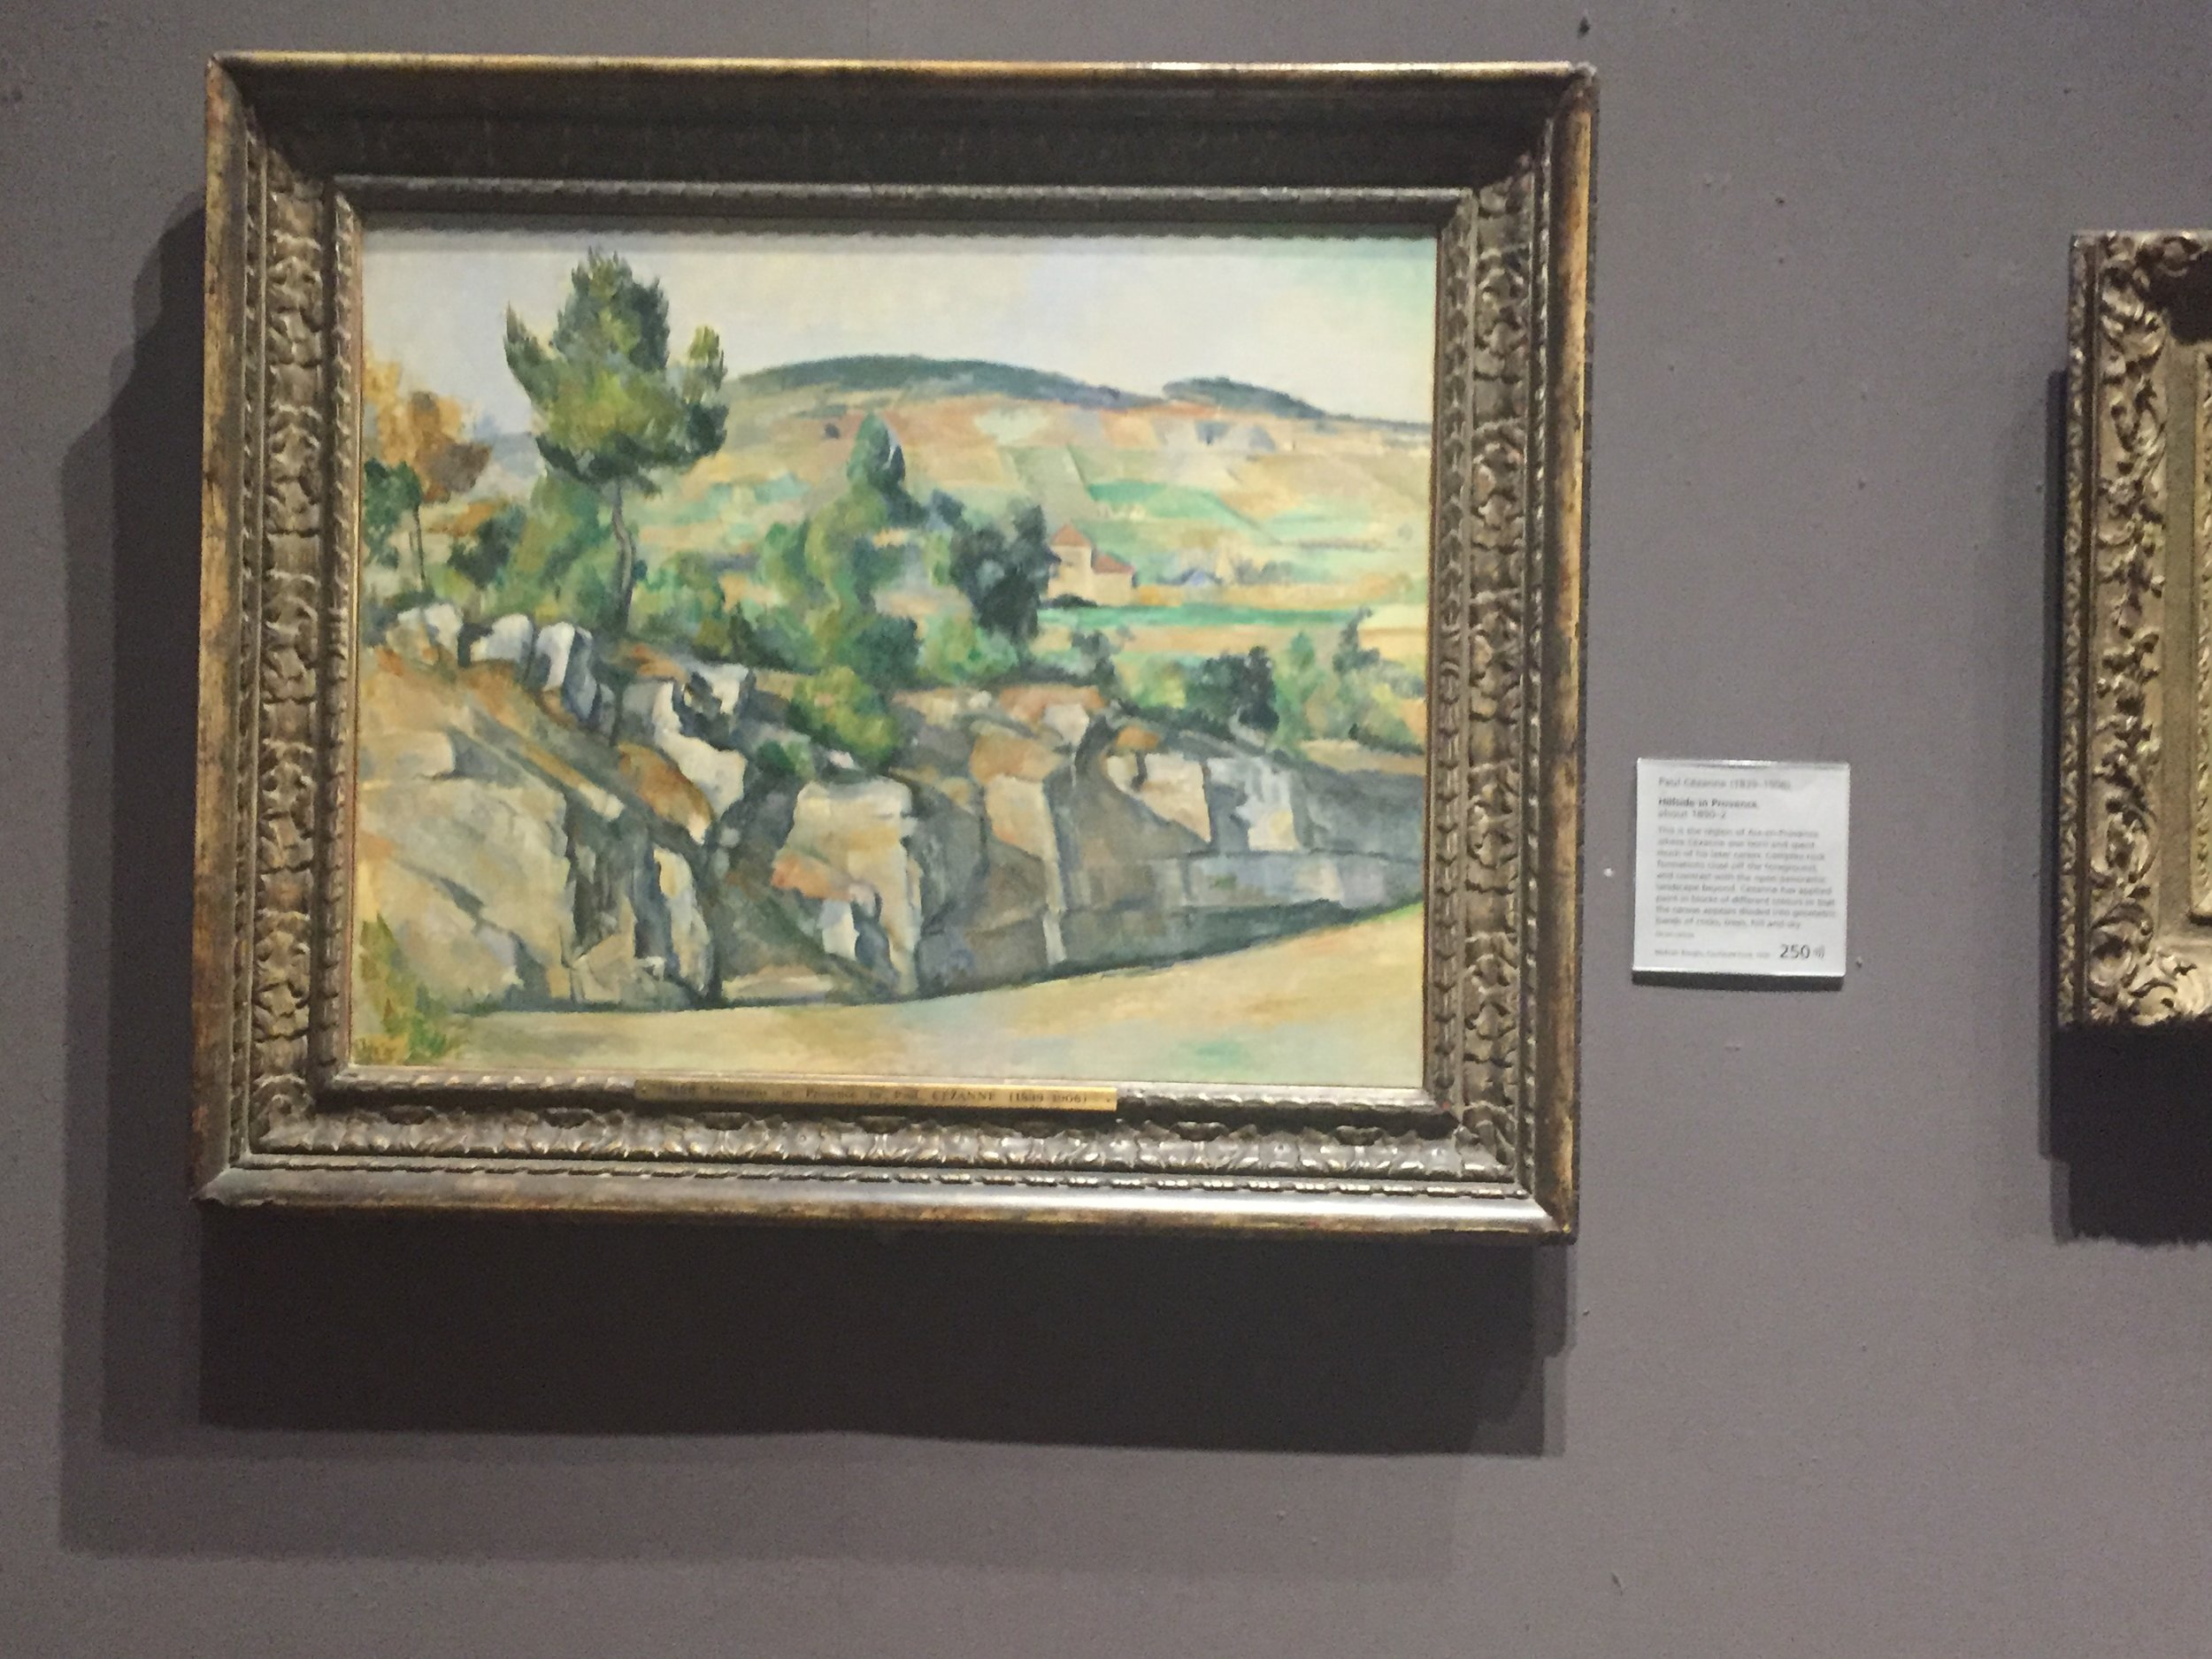 Hillside in Provence, Paul Cezanne, National Gallery of Art, London, England